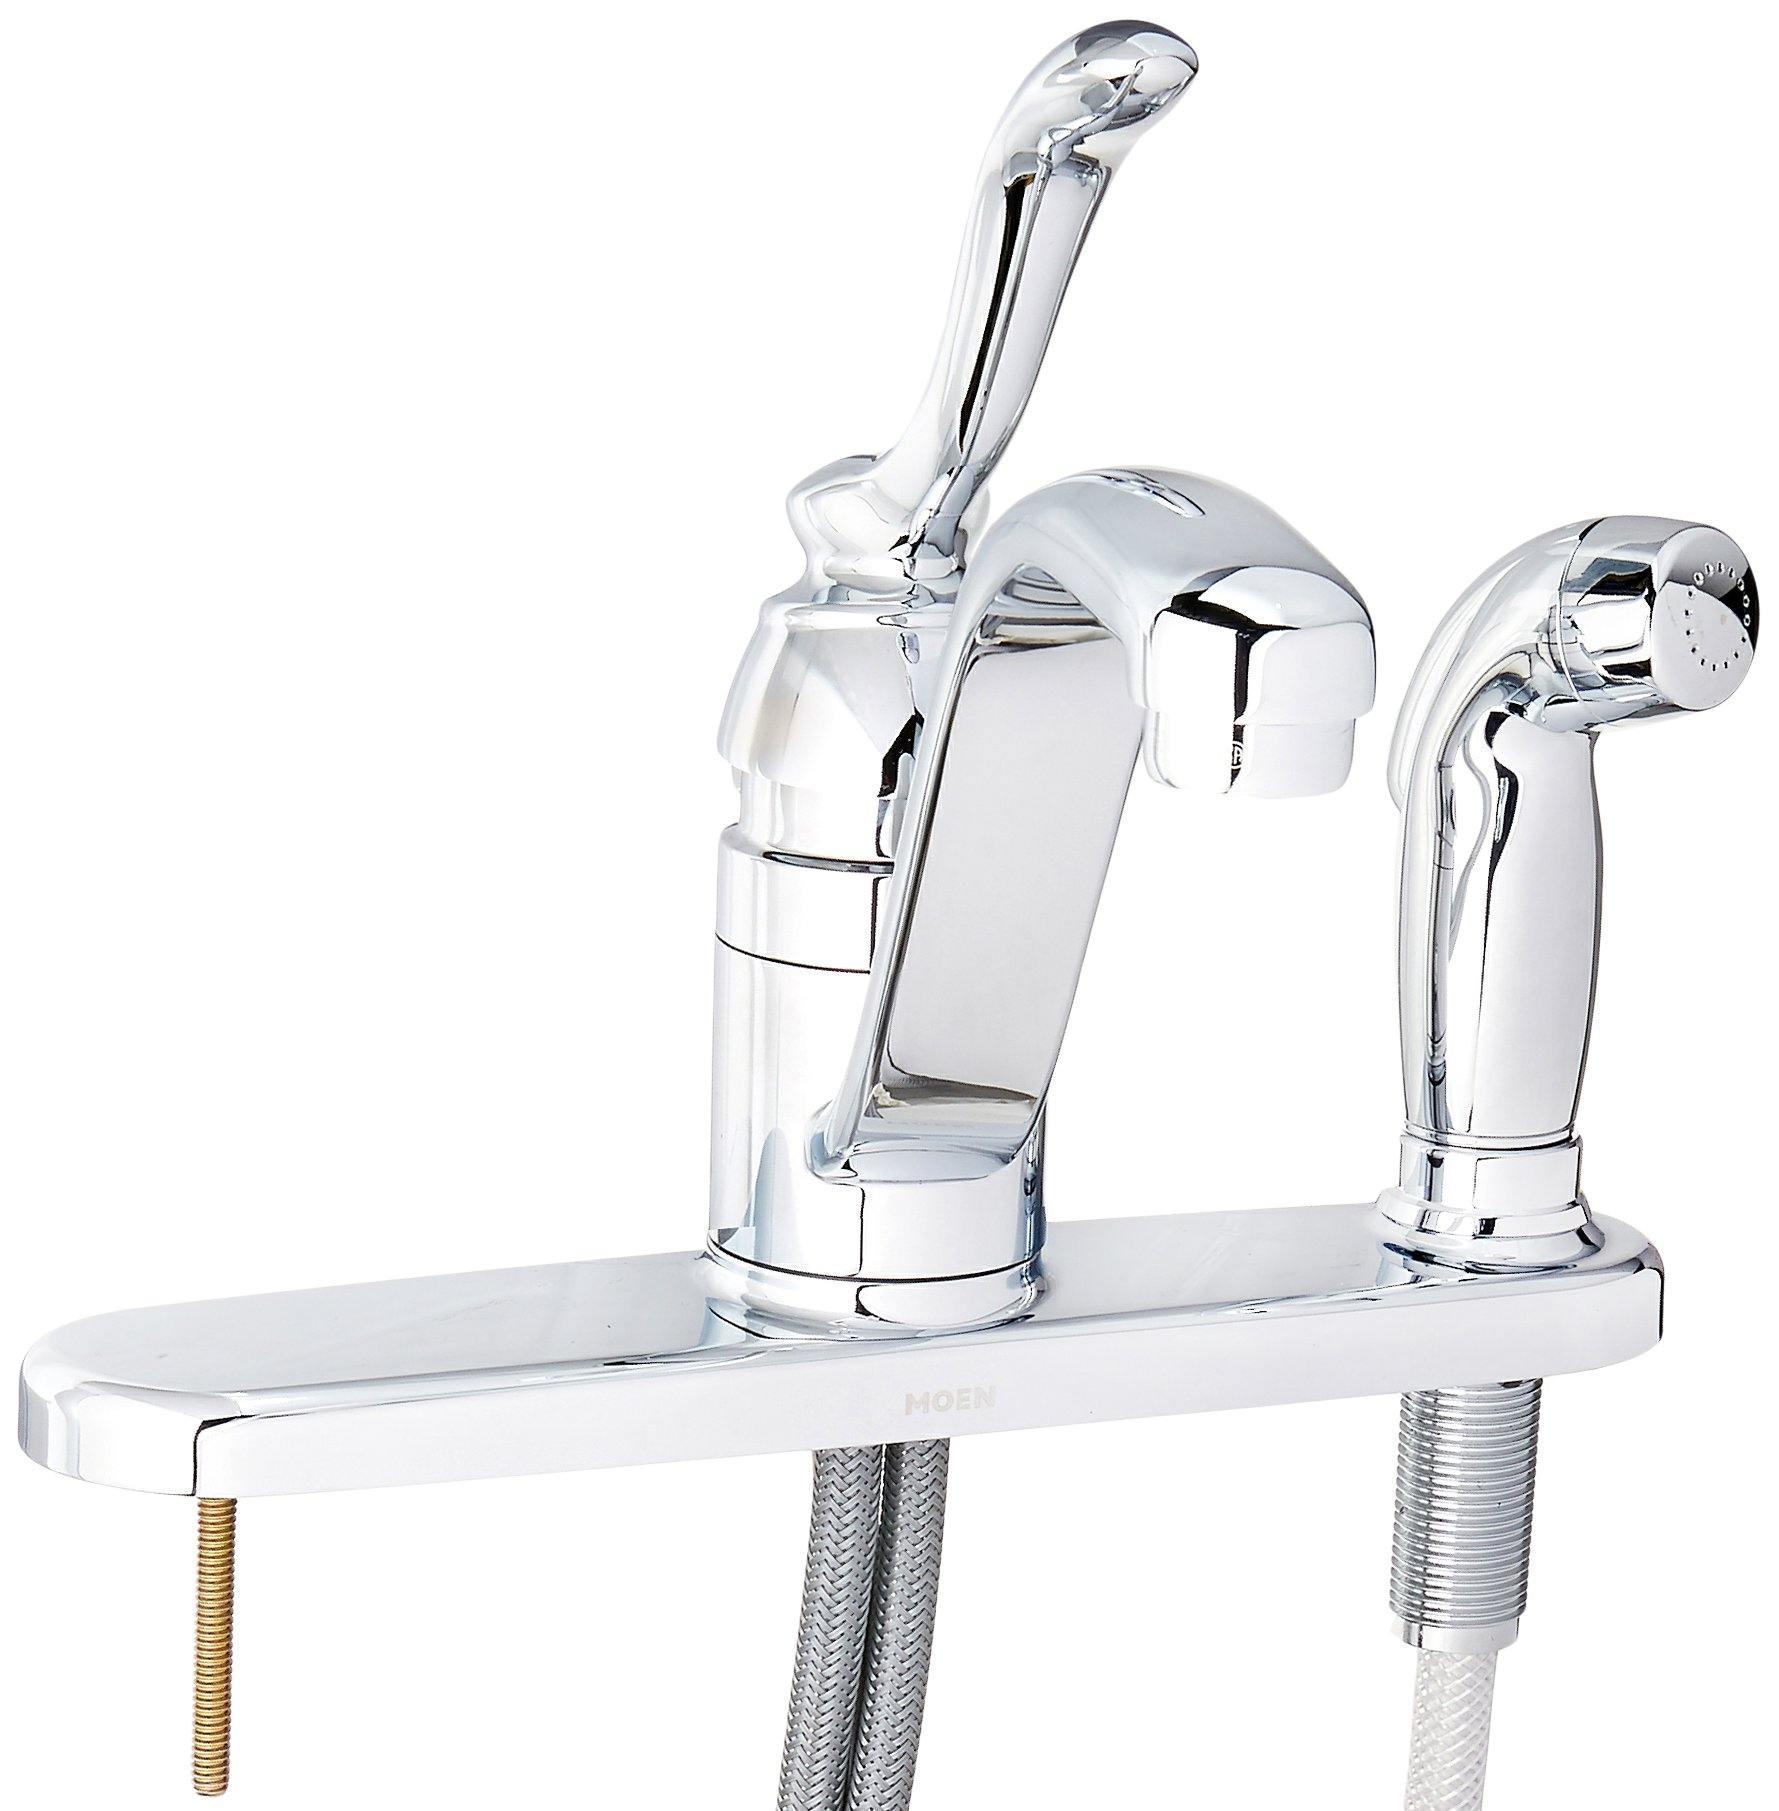 Moen CA87527 Kitchen Faucet with Side Spray from the Banbury Collection, Chrome